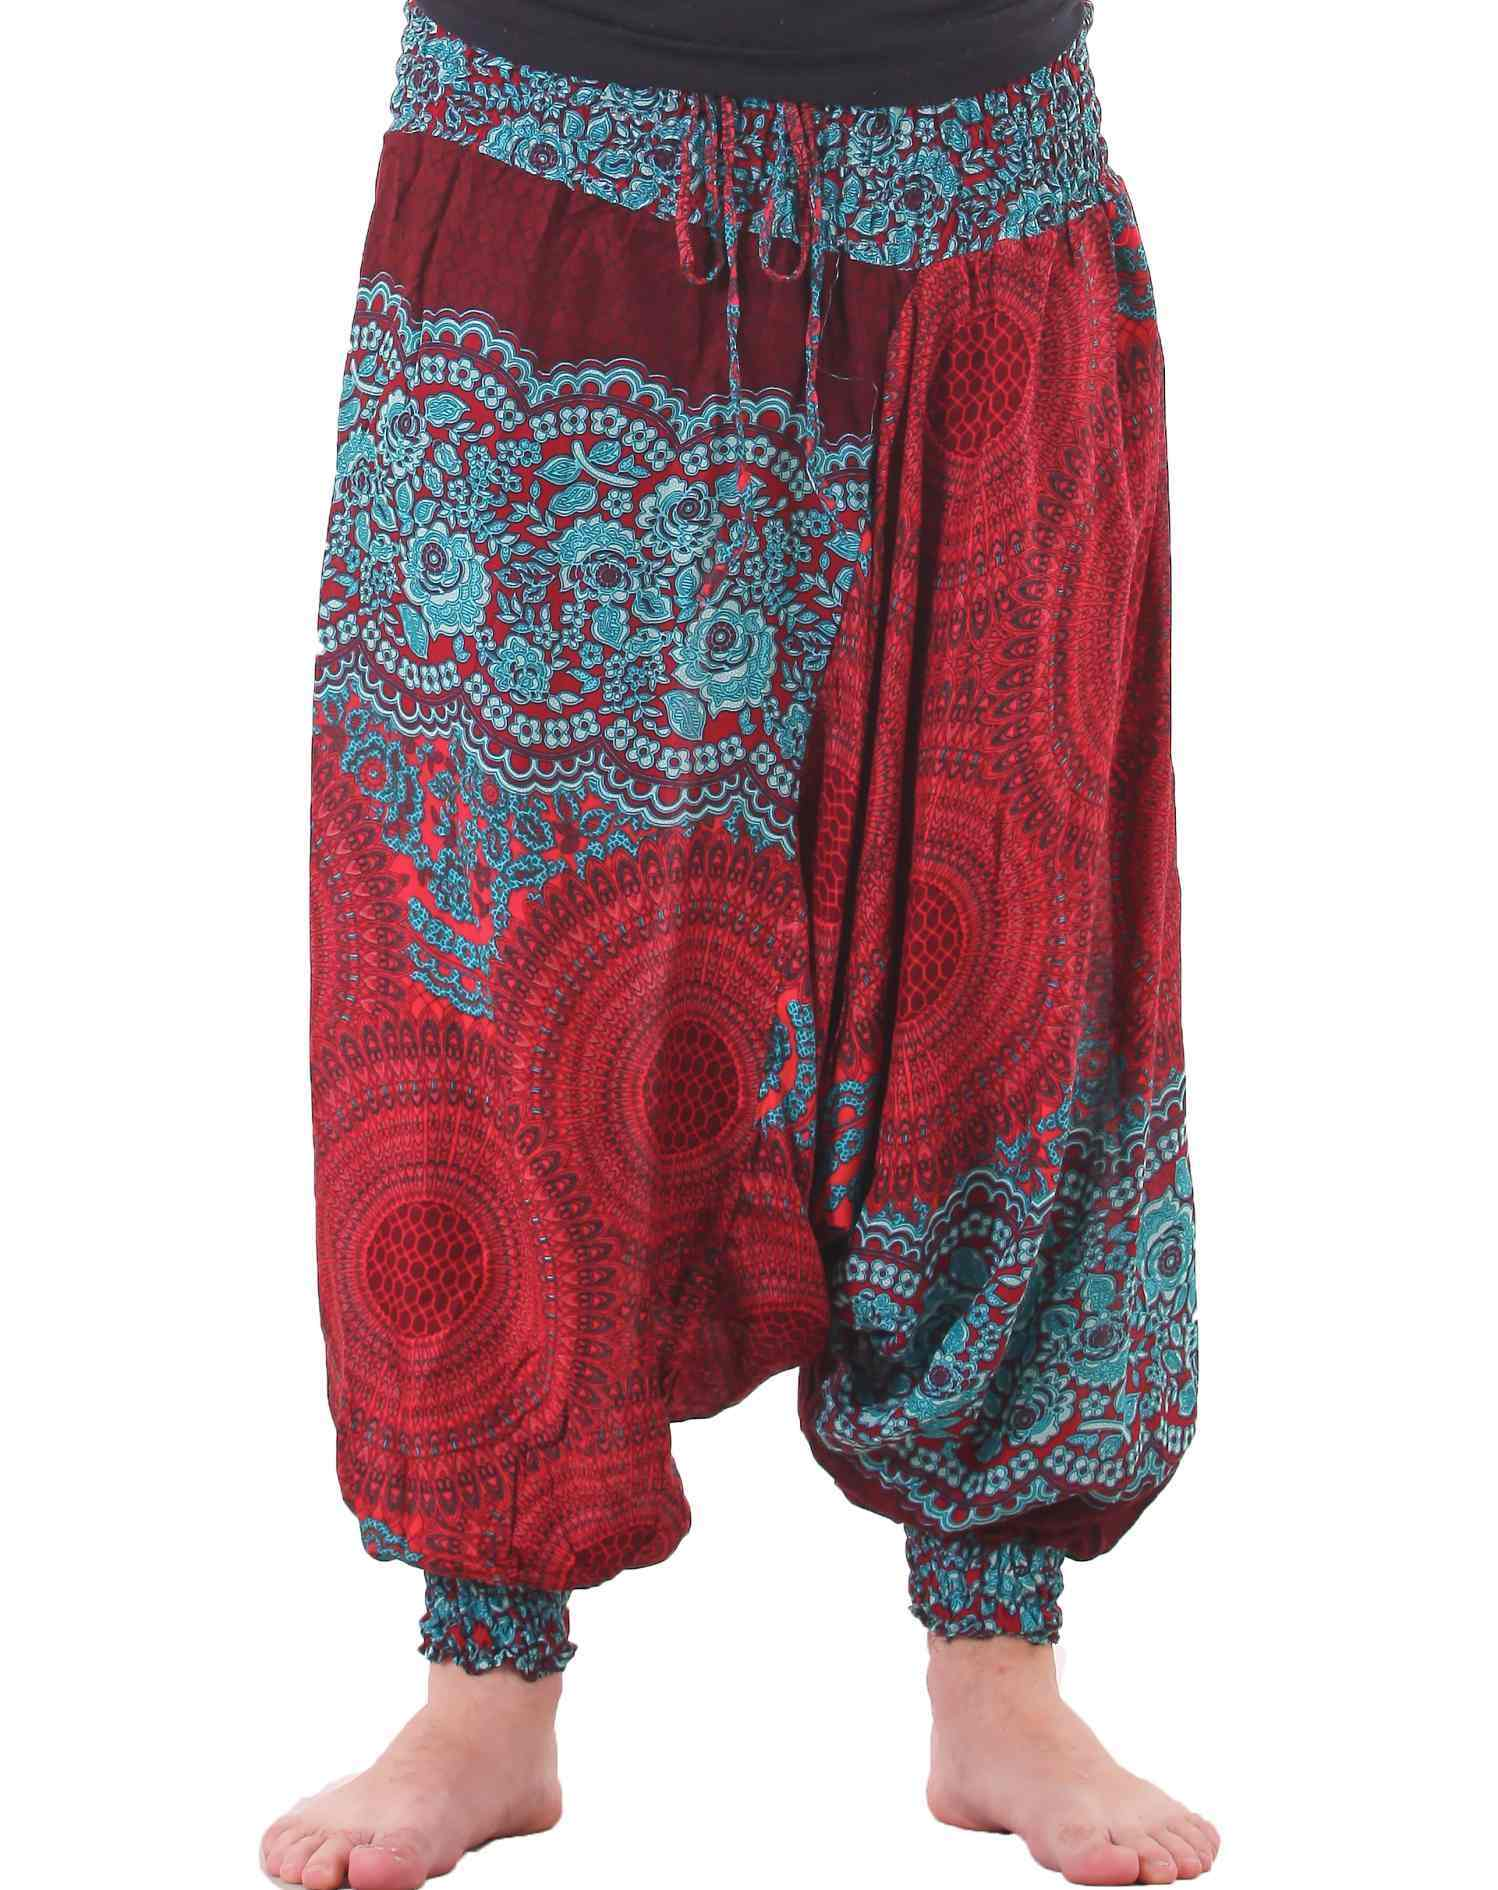 mandala harem hippie pants drop crotch in red u0026 turquoise for men PBVCZDH